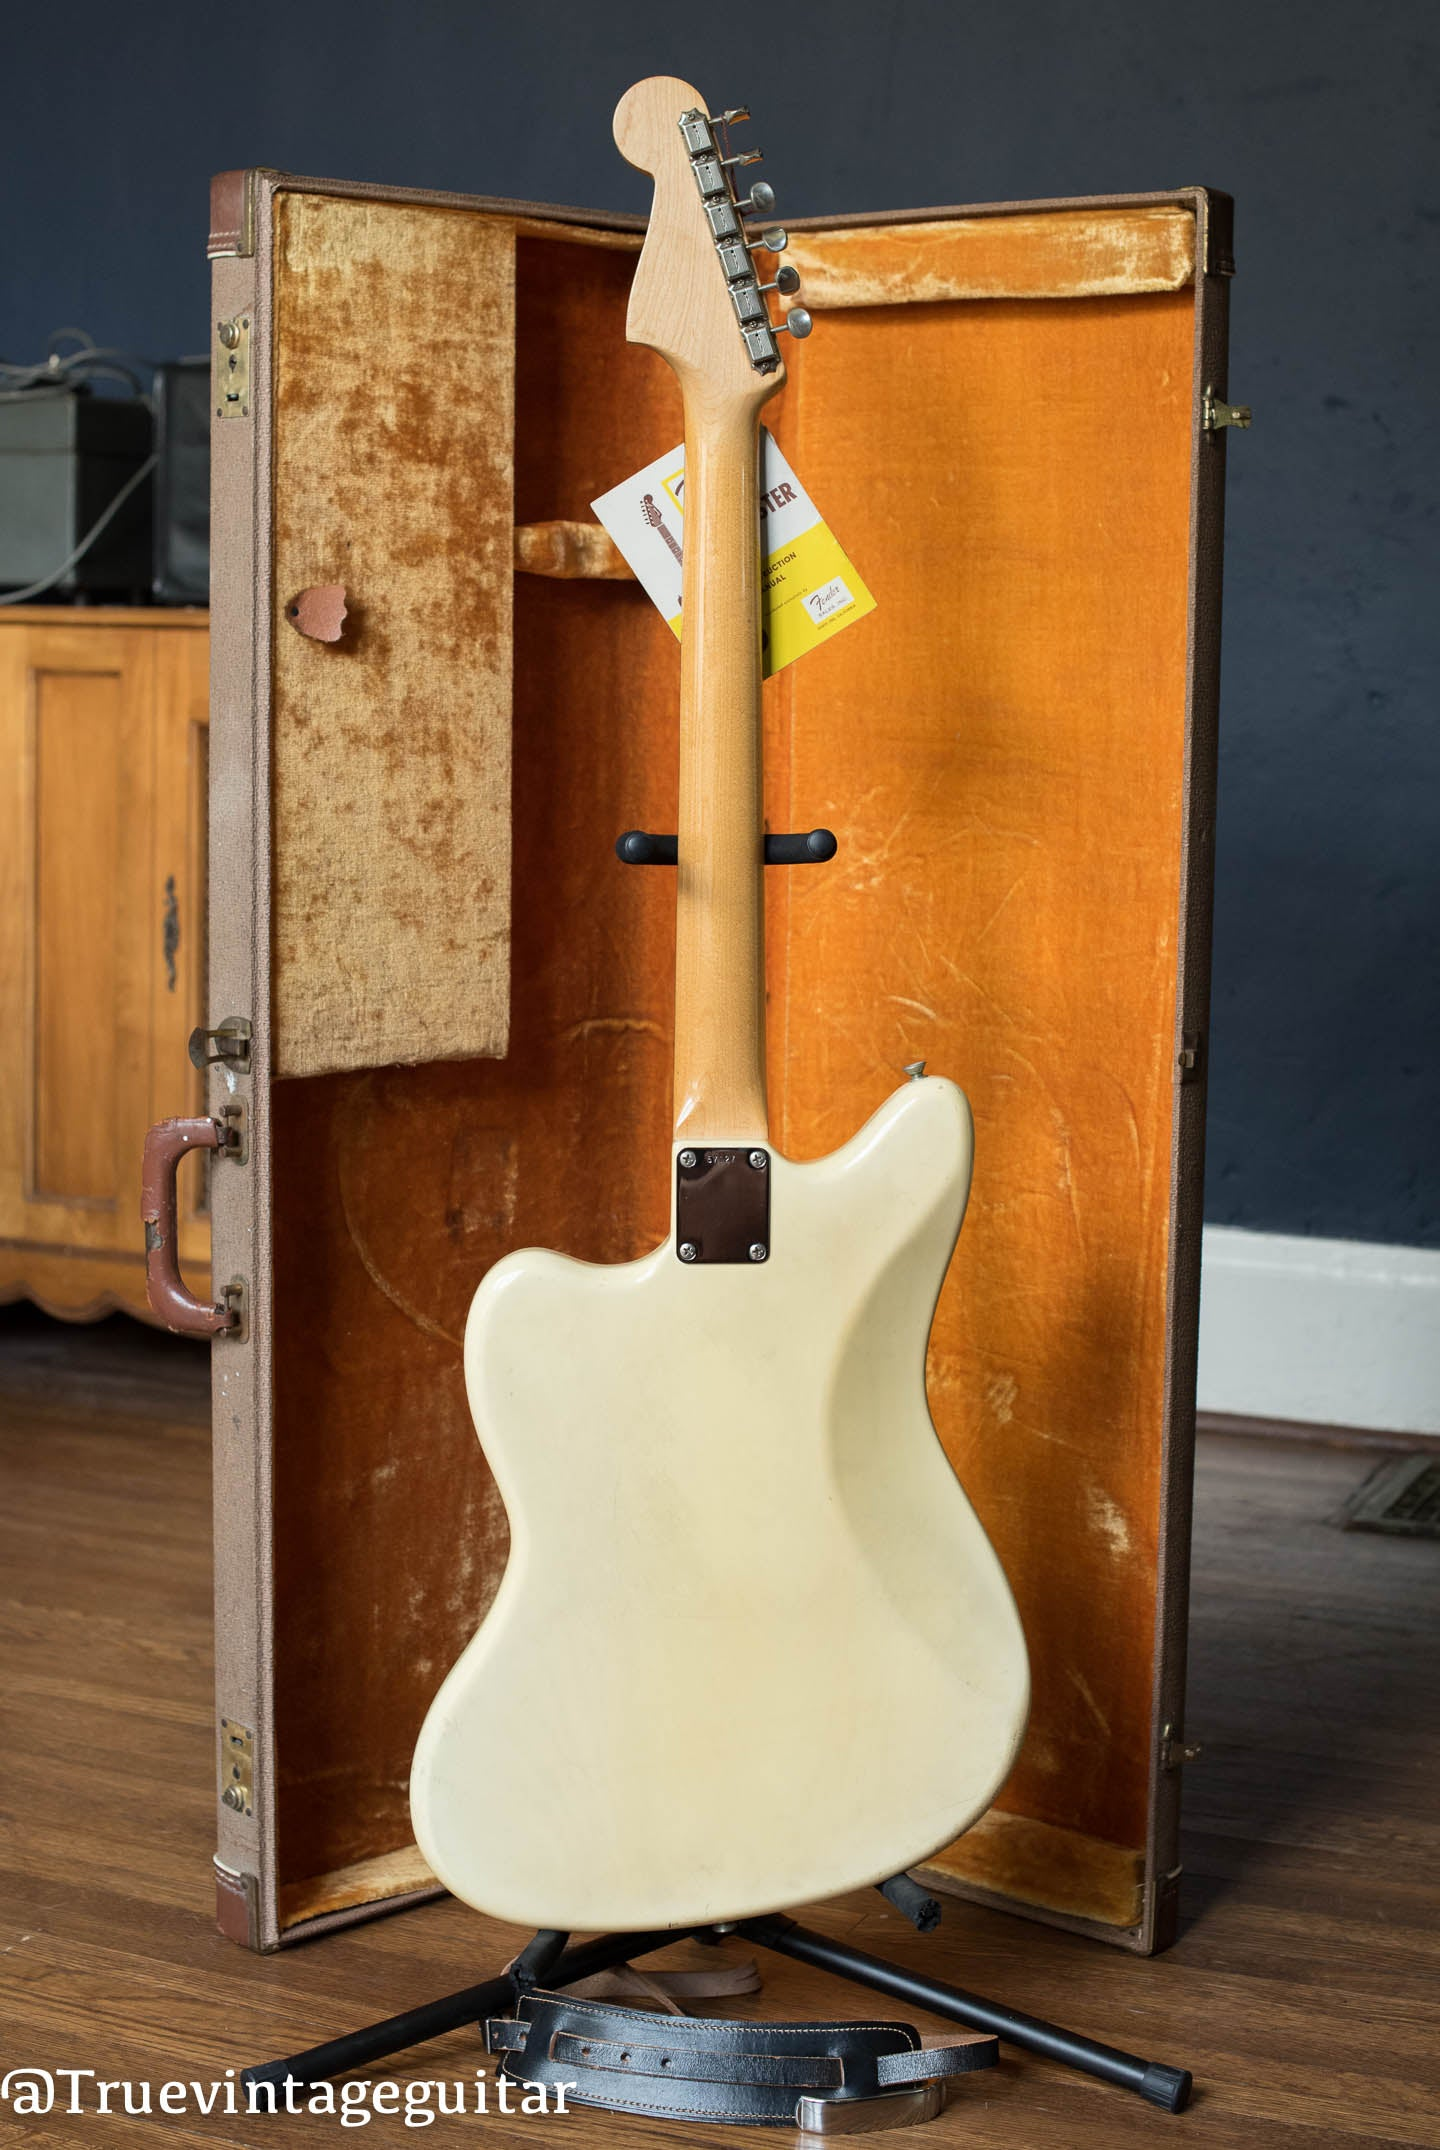 1961 Fender Jazzmaster Guitar, Blond finish over Ash body, back